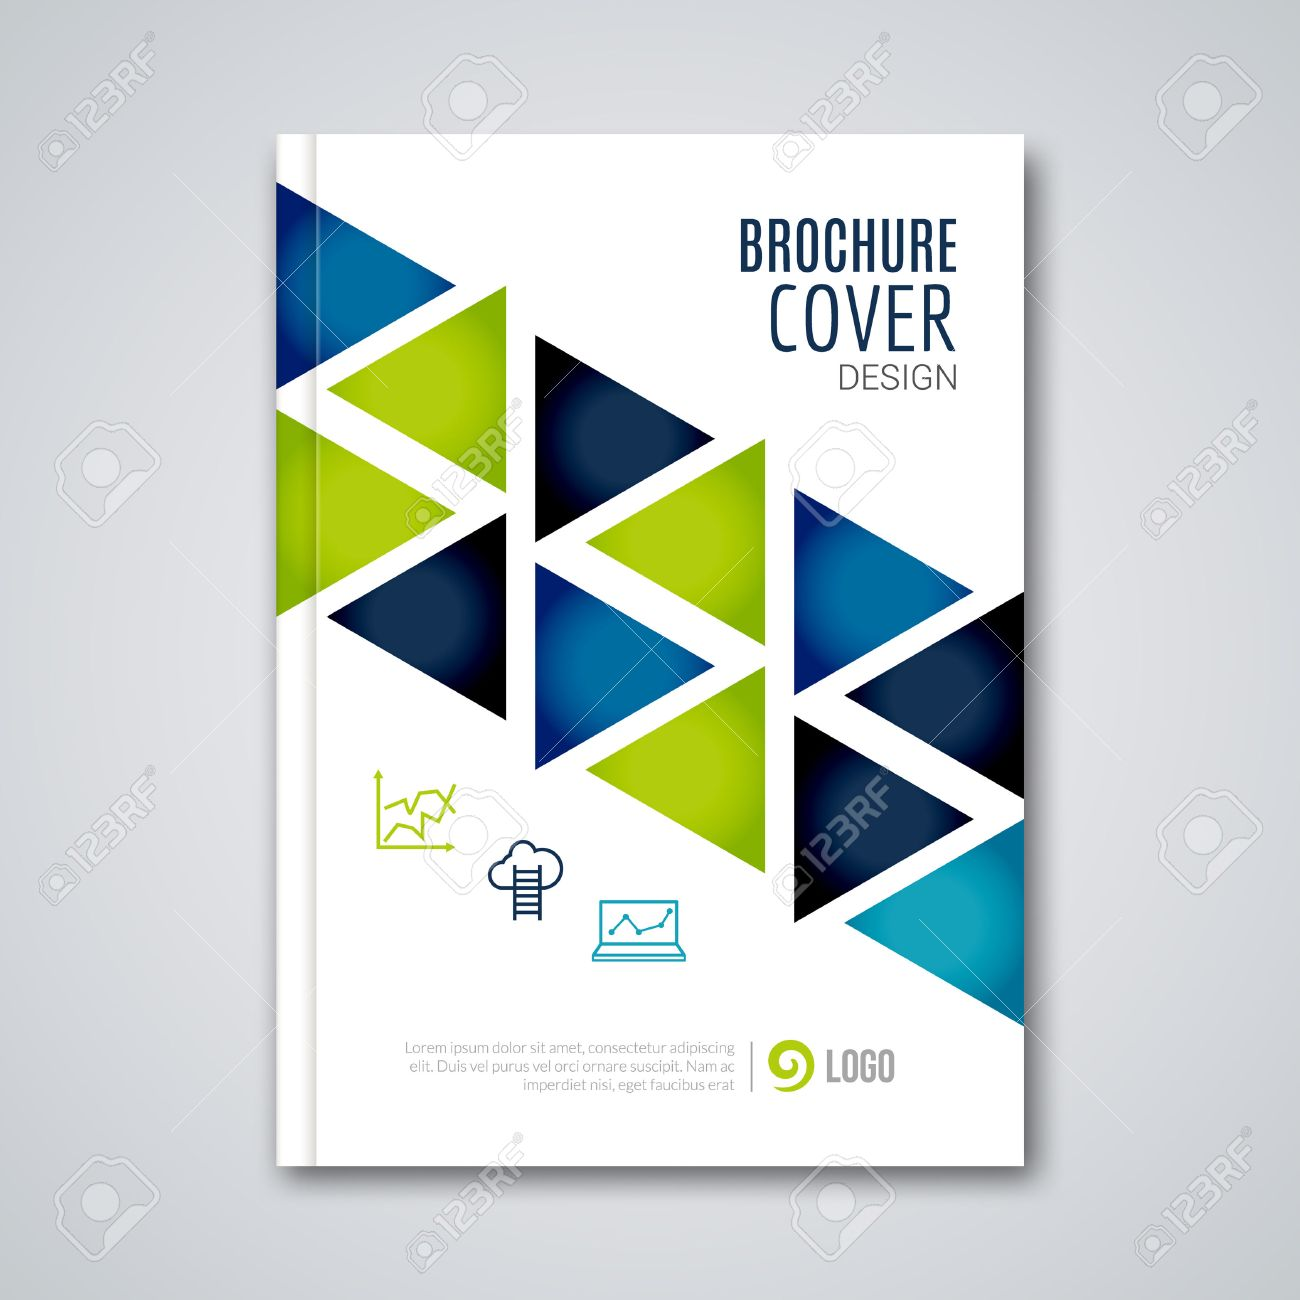 magazine cover on white stock photos images royalty magazine cover on white cover flyer report colorful triangle geometric prospectus design background cover